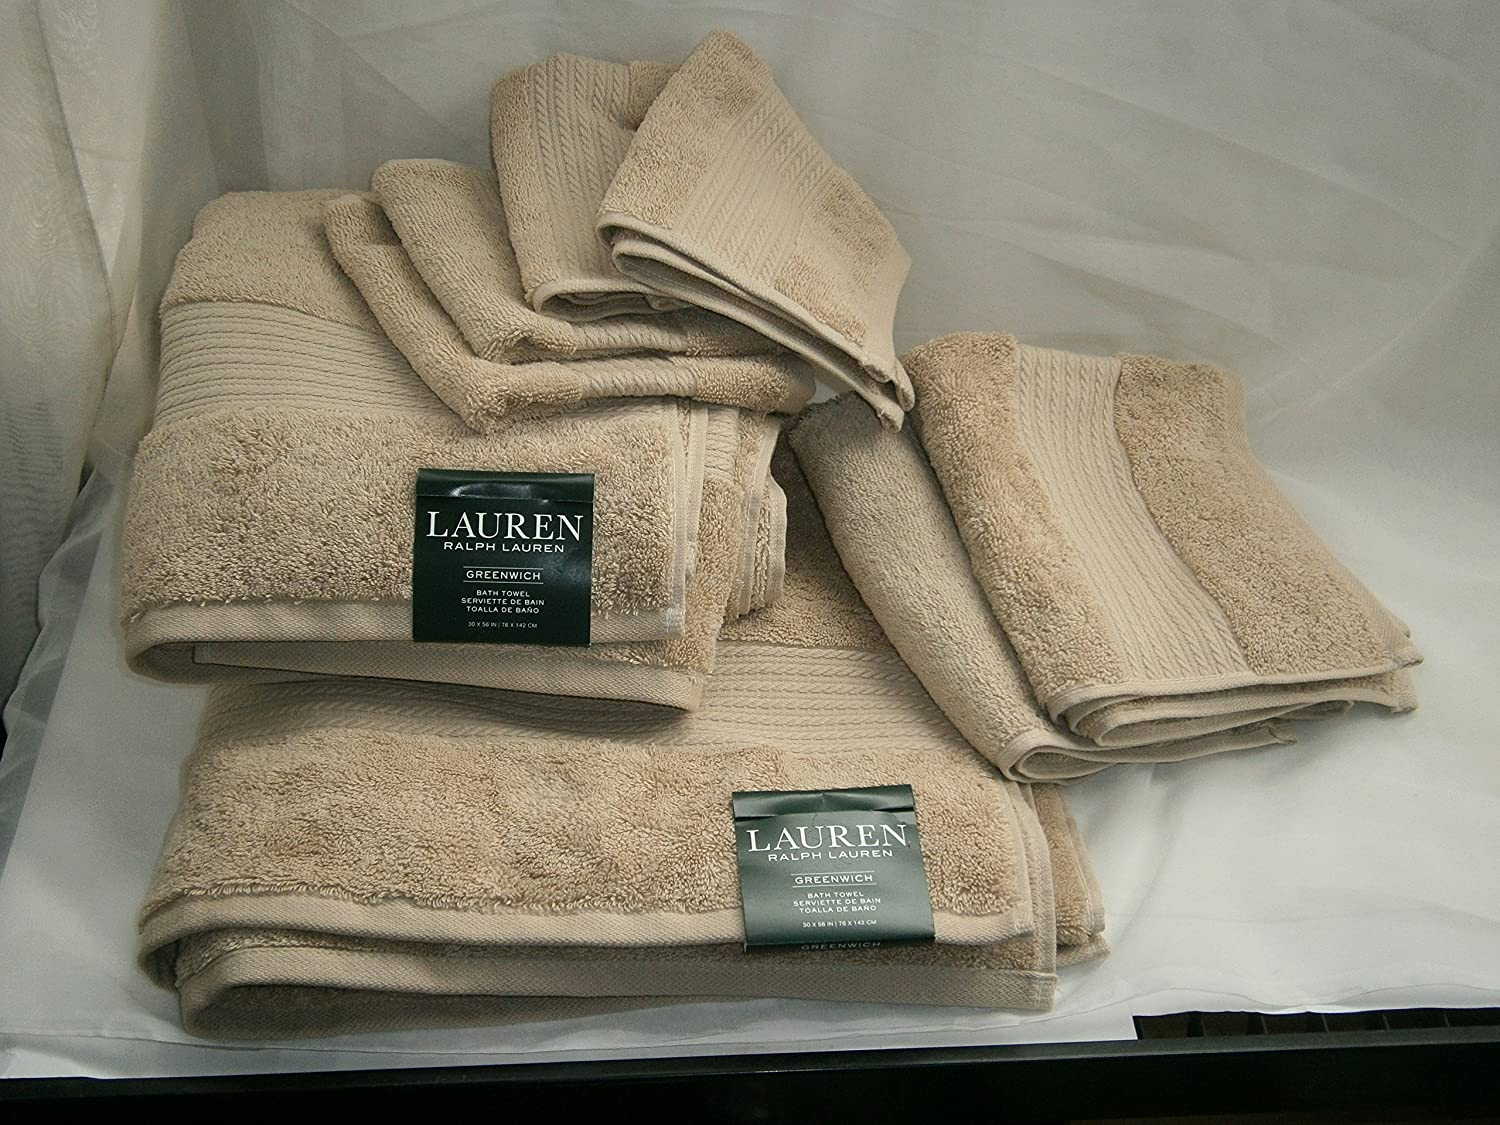 Amazon.com: Greenwich Towel Set 8 pc DUNE / Dark Sand Beige: Home & Kitchen